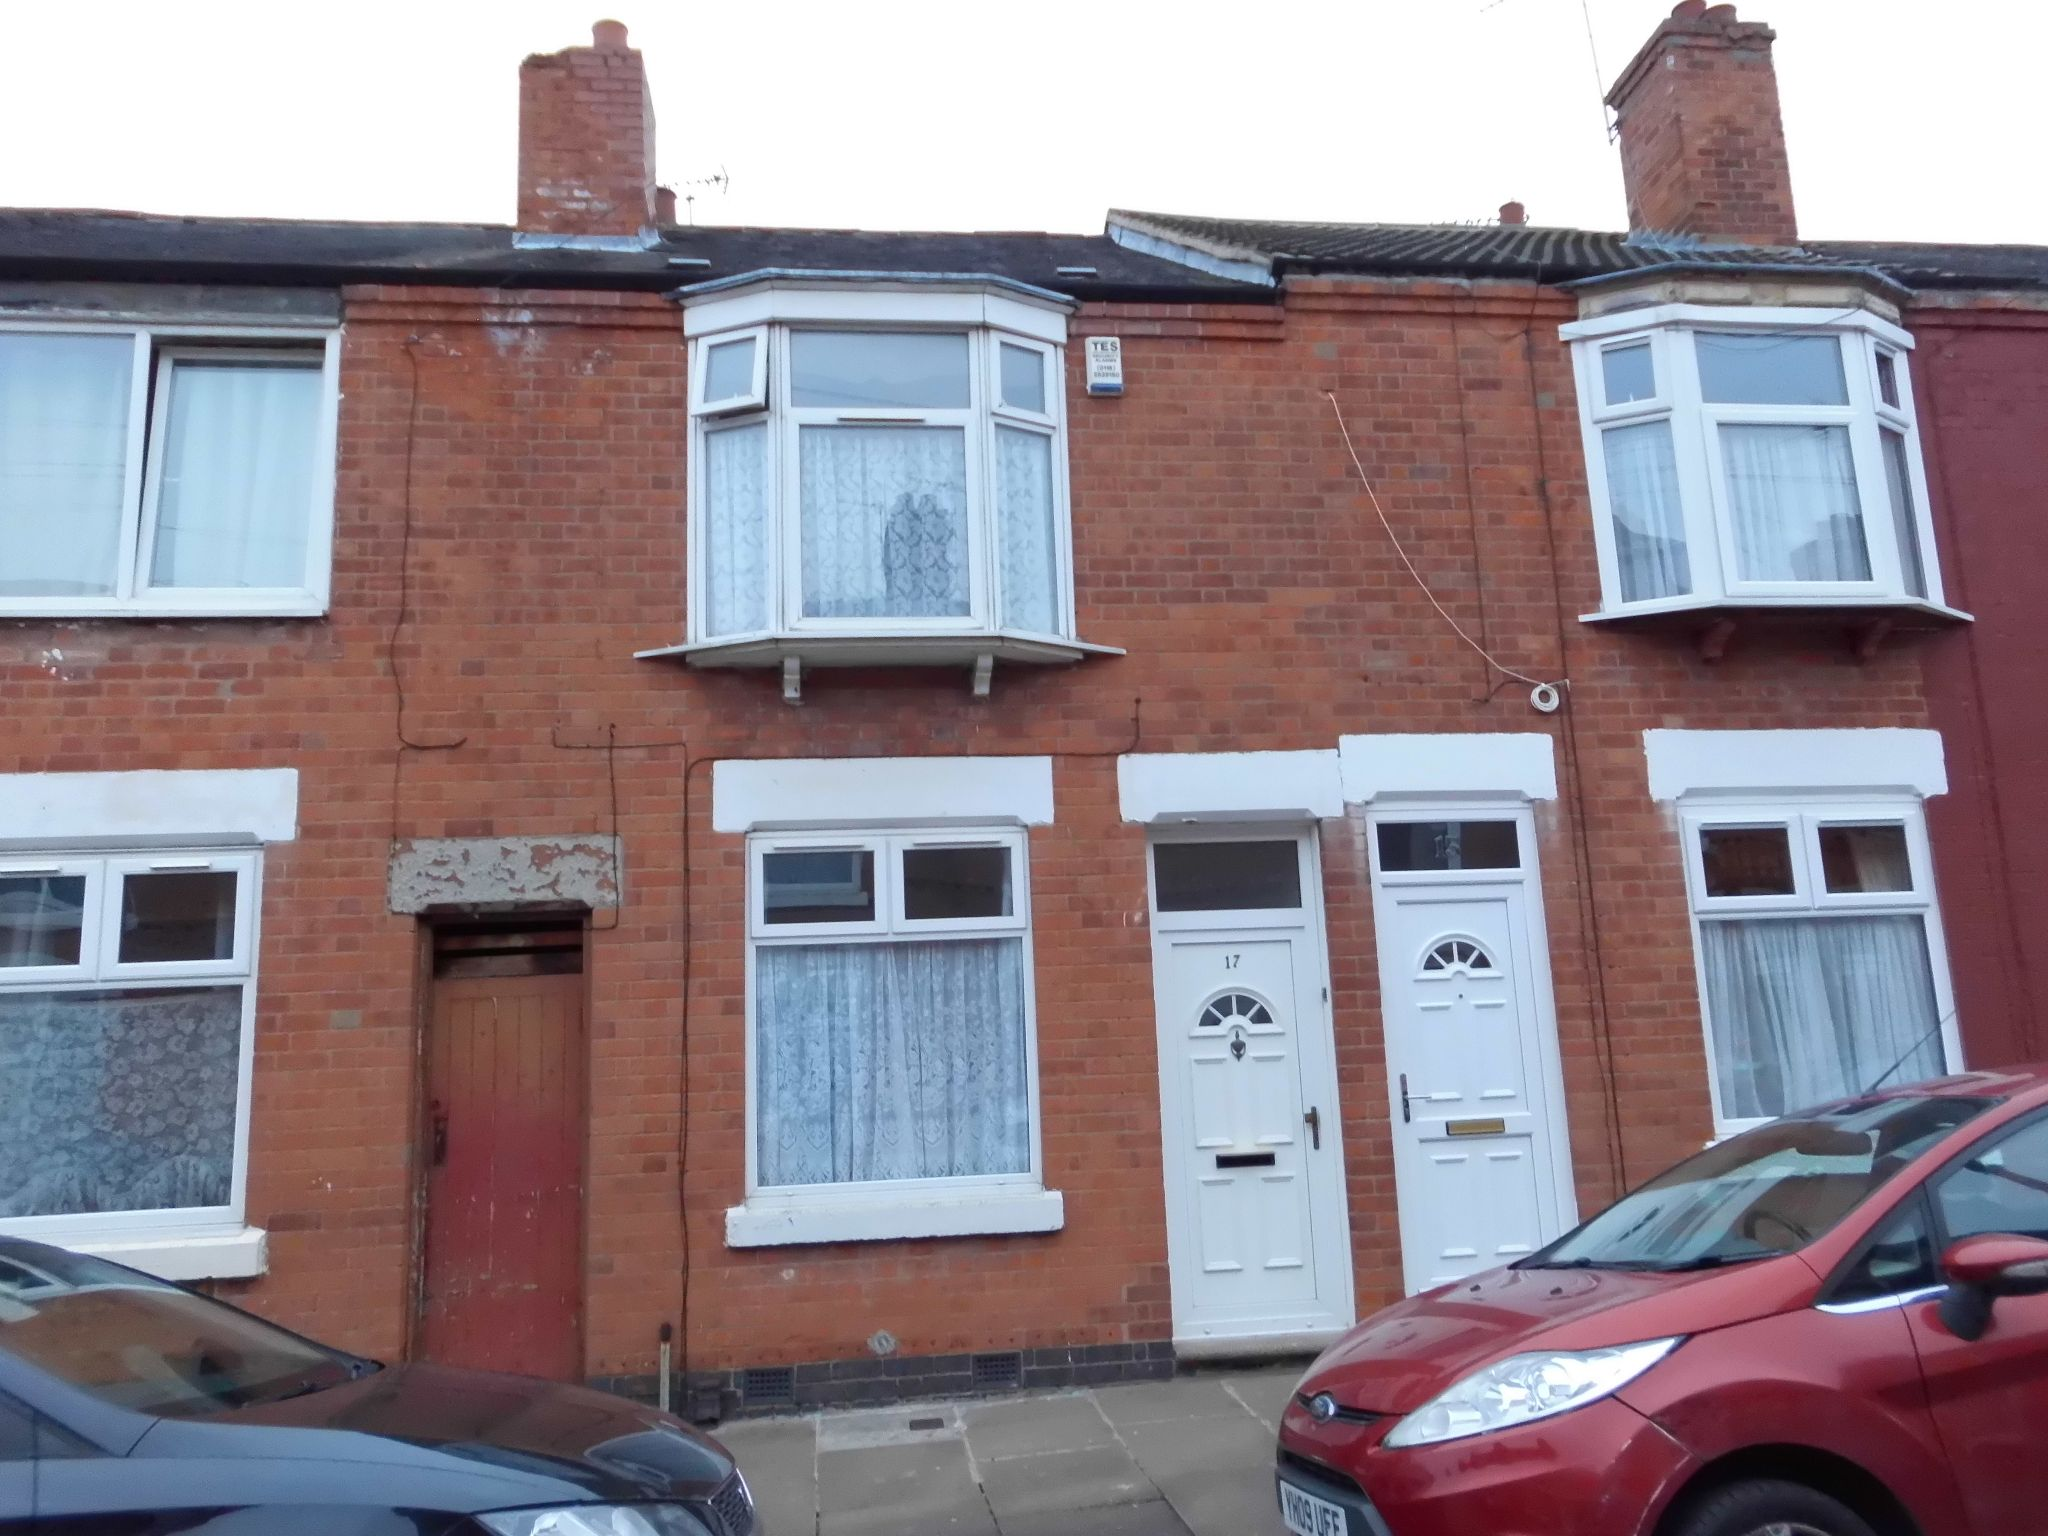 3 bedroom mid terraced house SSTC in Leicester - Property photograph.